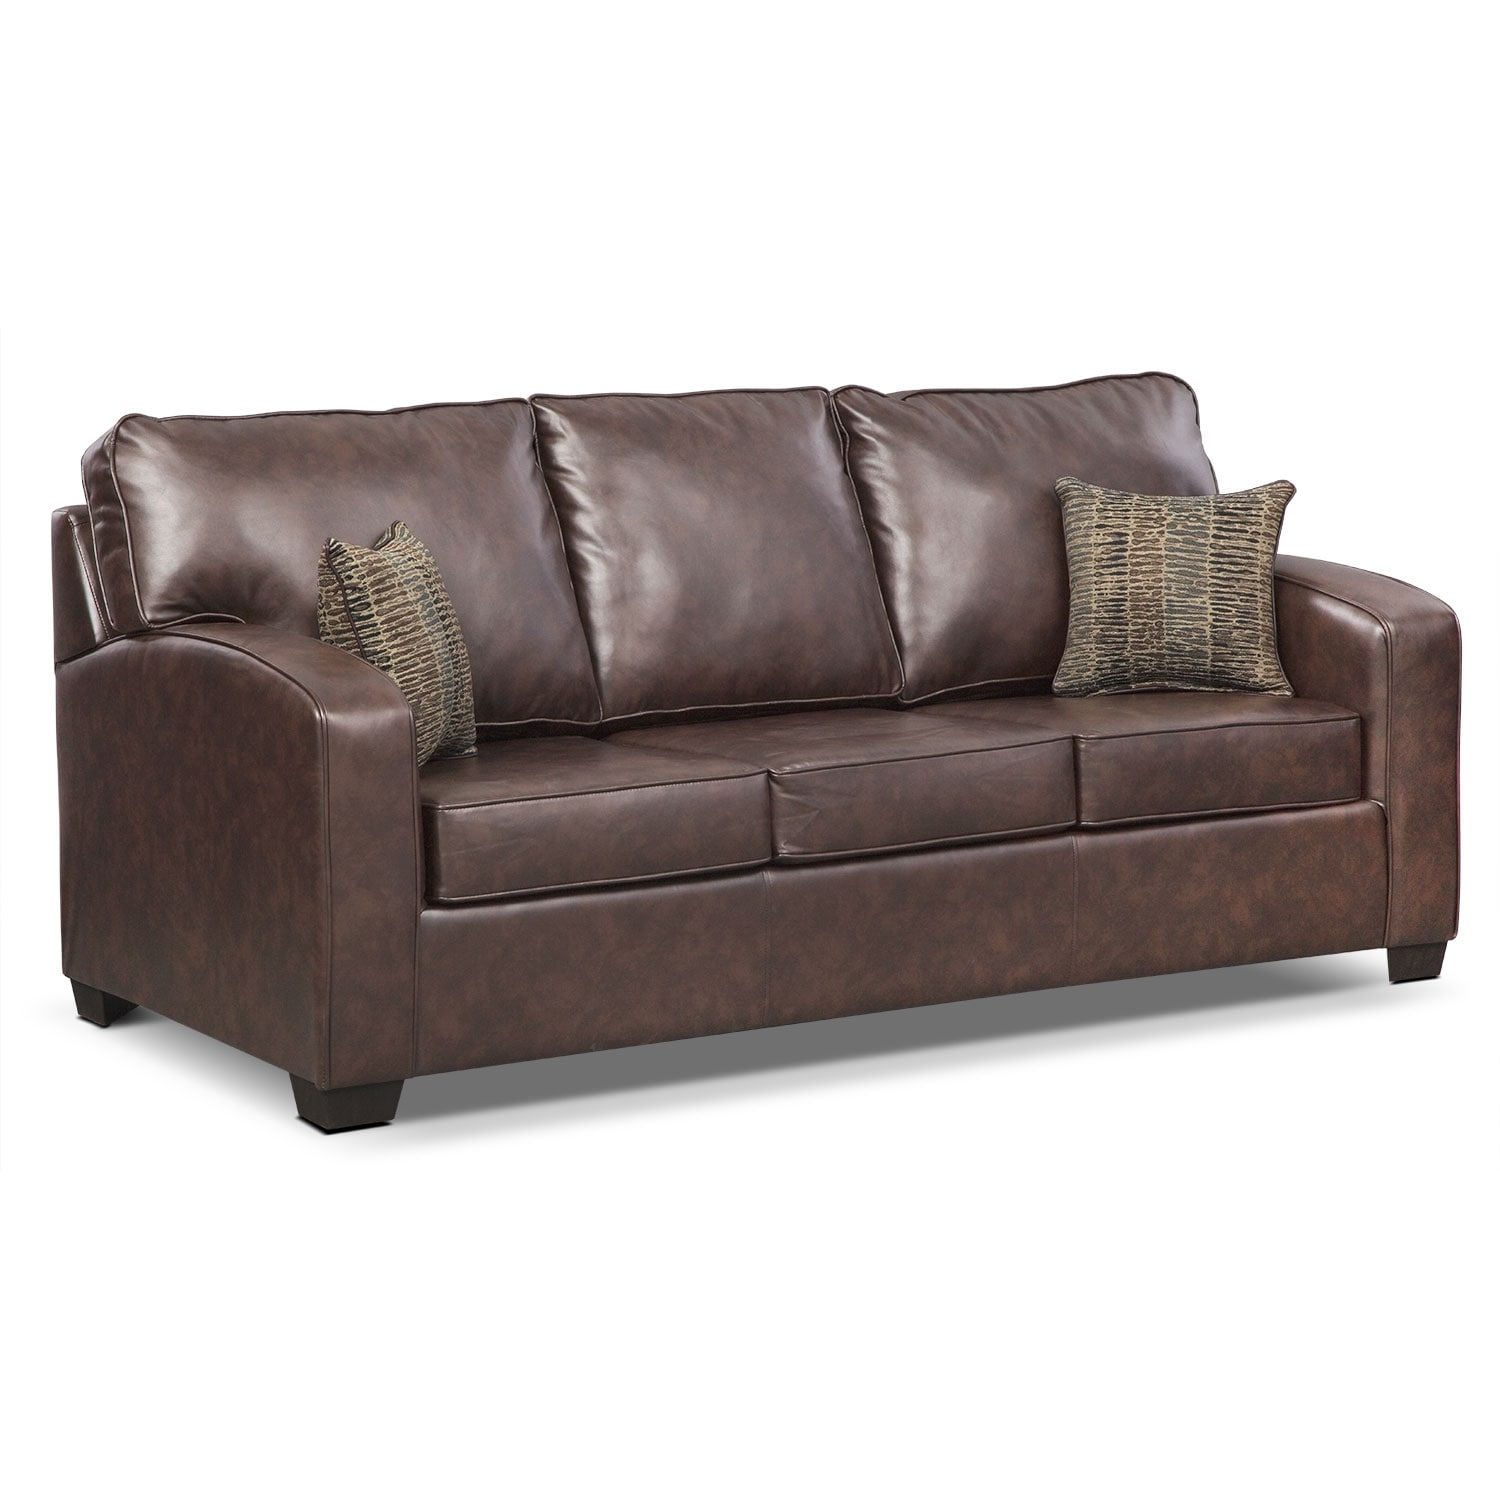 Brookline Queen Memory Foam Sleeper Sofa Brown Value